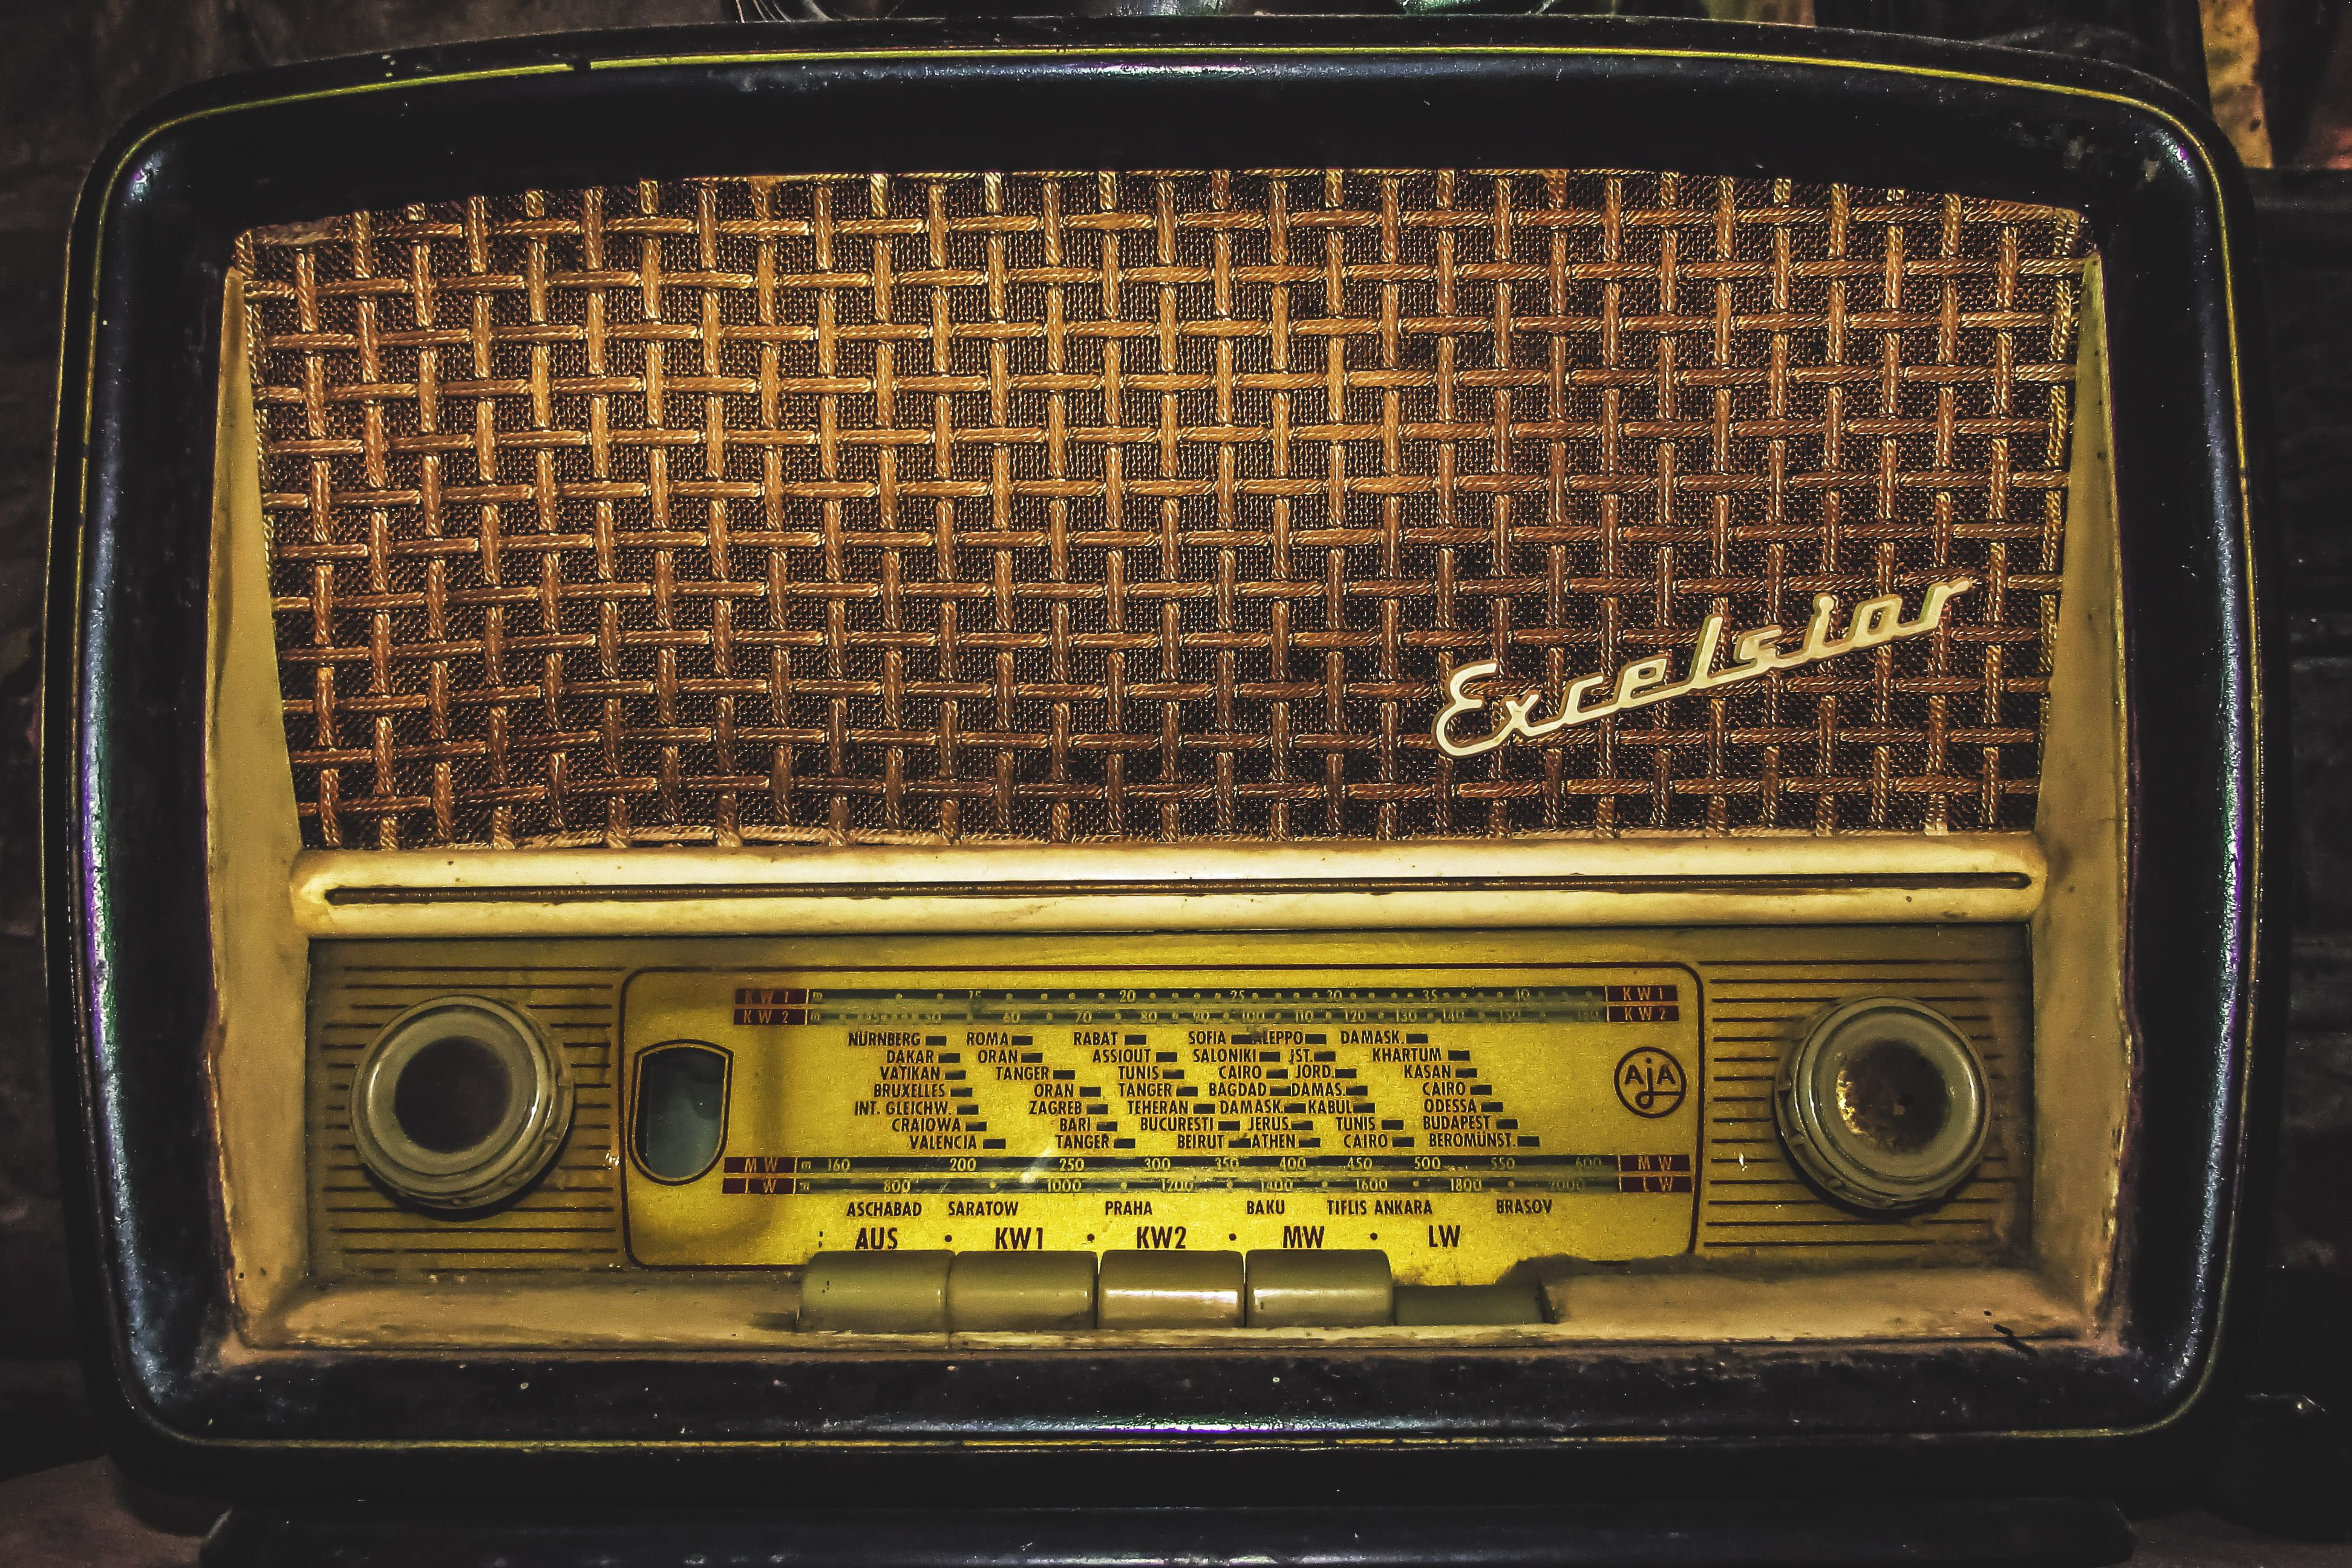 An Old Retro Vintage Radio Technology Music Retro Styled Old Fashioned Wallpaper In 2020 Vintage Wallpaper Vintage Radio Electronics Wallpaper